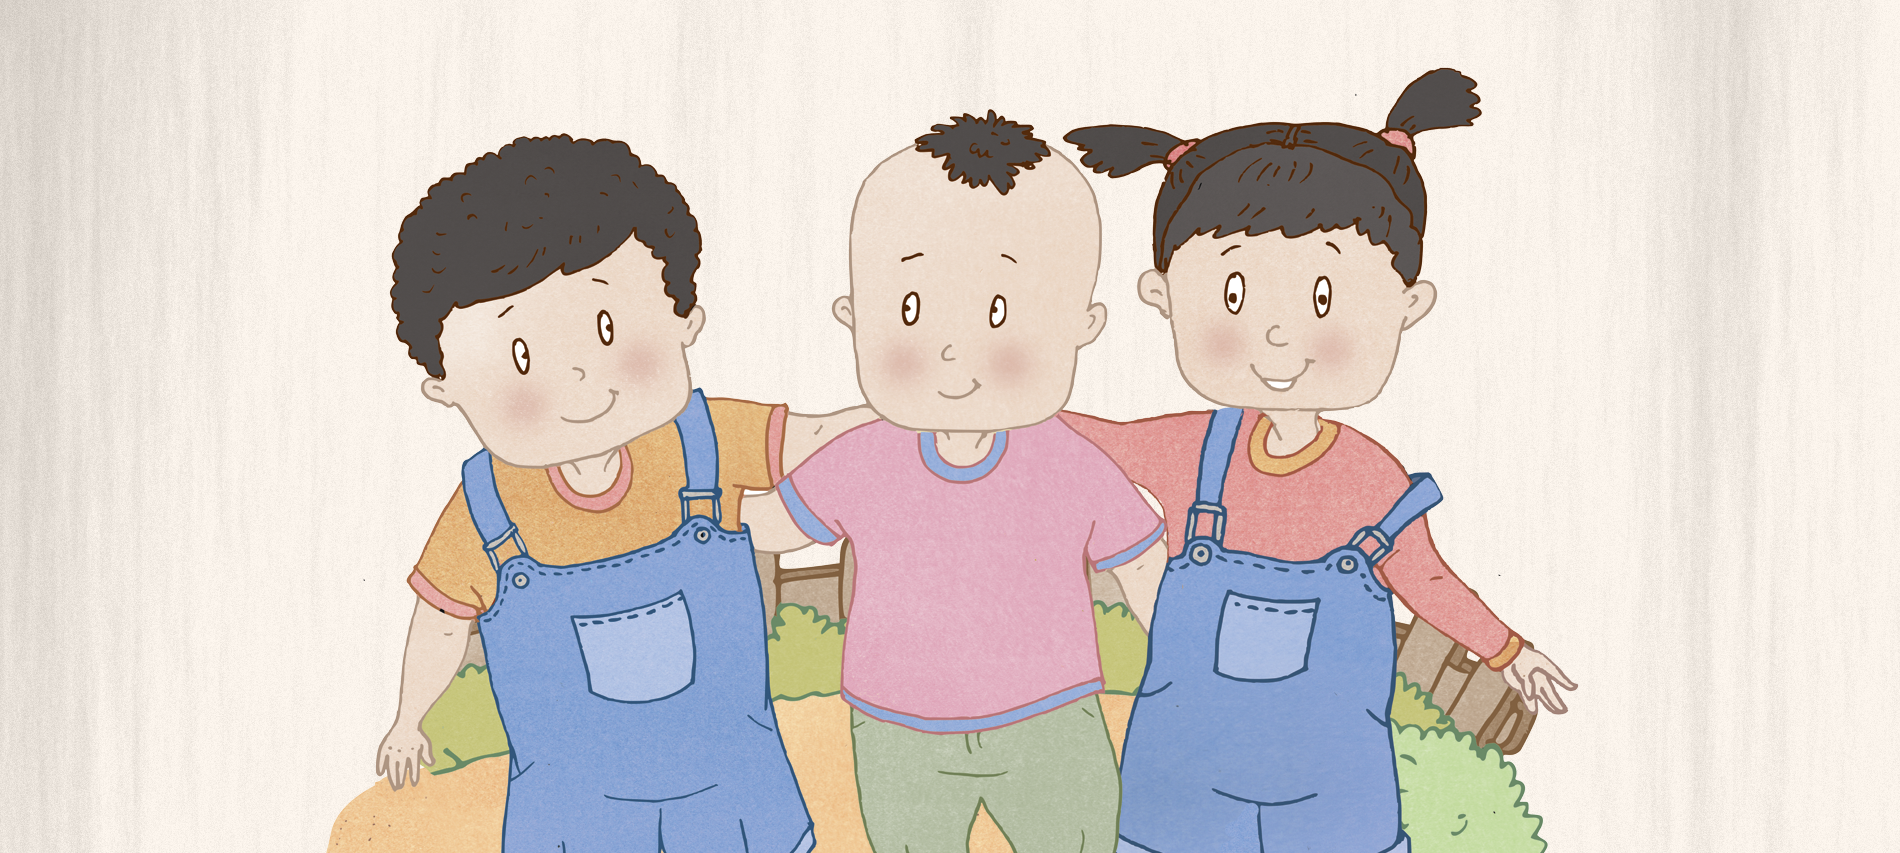 There's a New Boy In Nicky and Noni's Class! Do They Become Friends? — 'Being a Good Friend Is Cool': An Excerpt